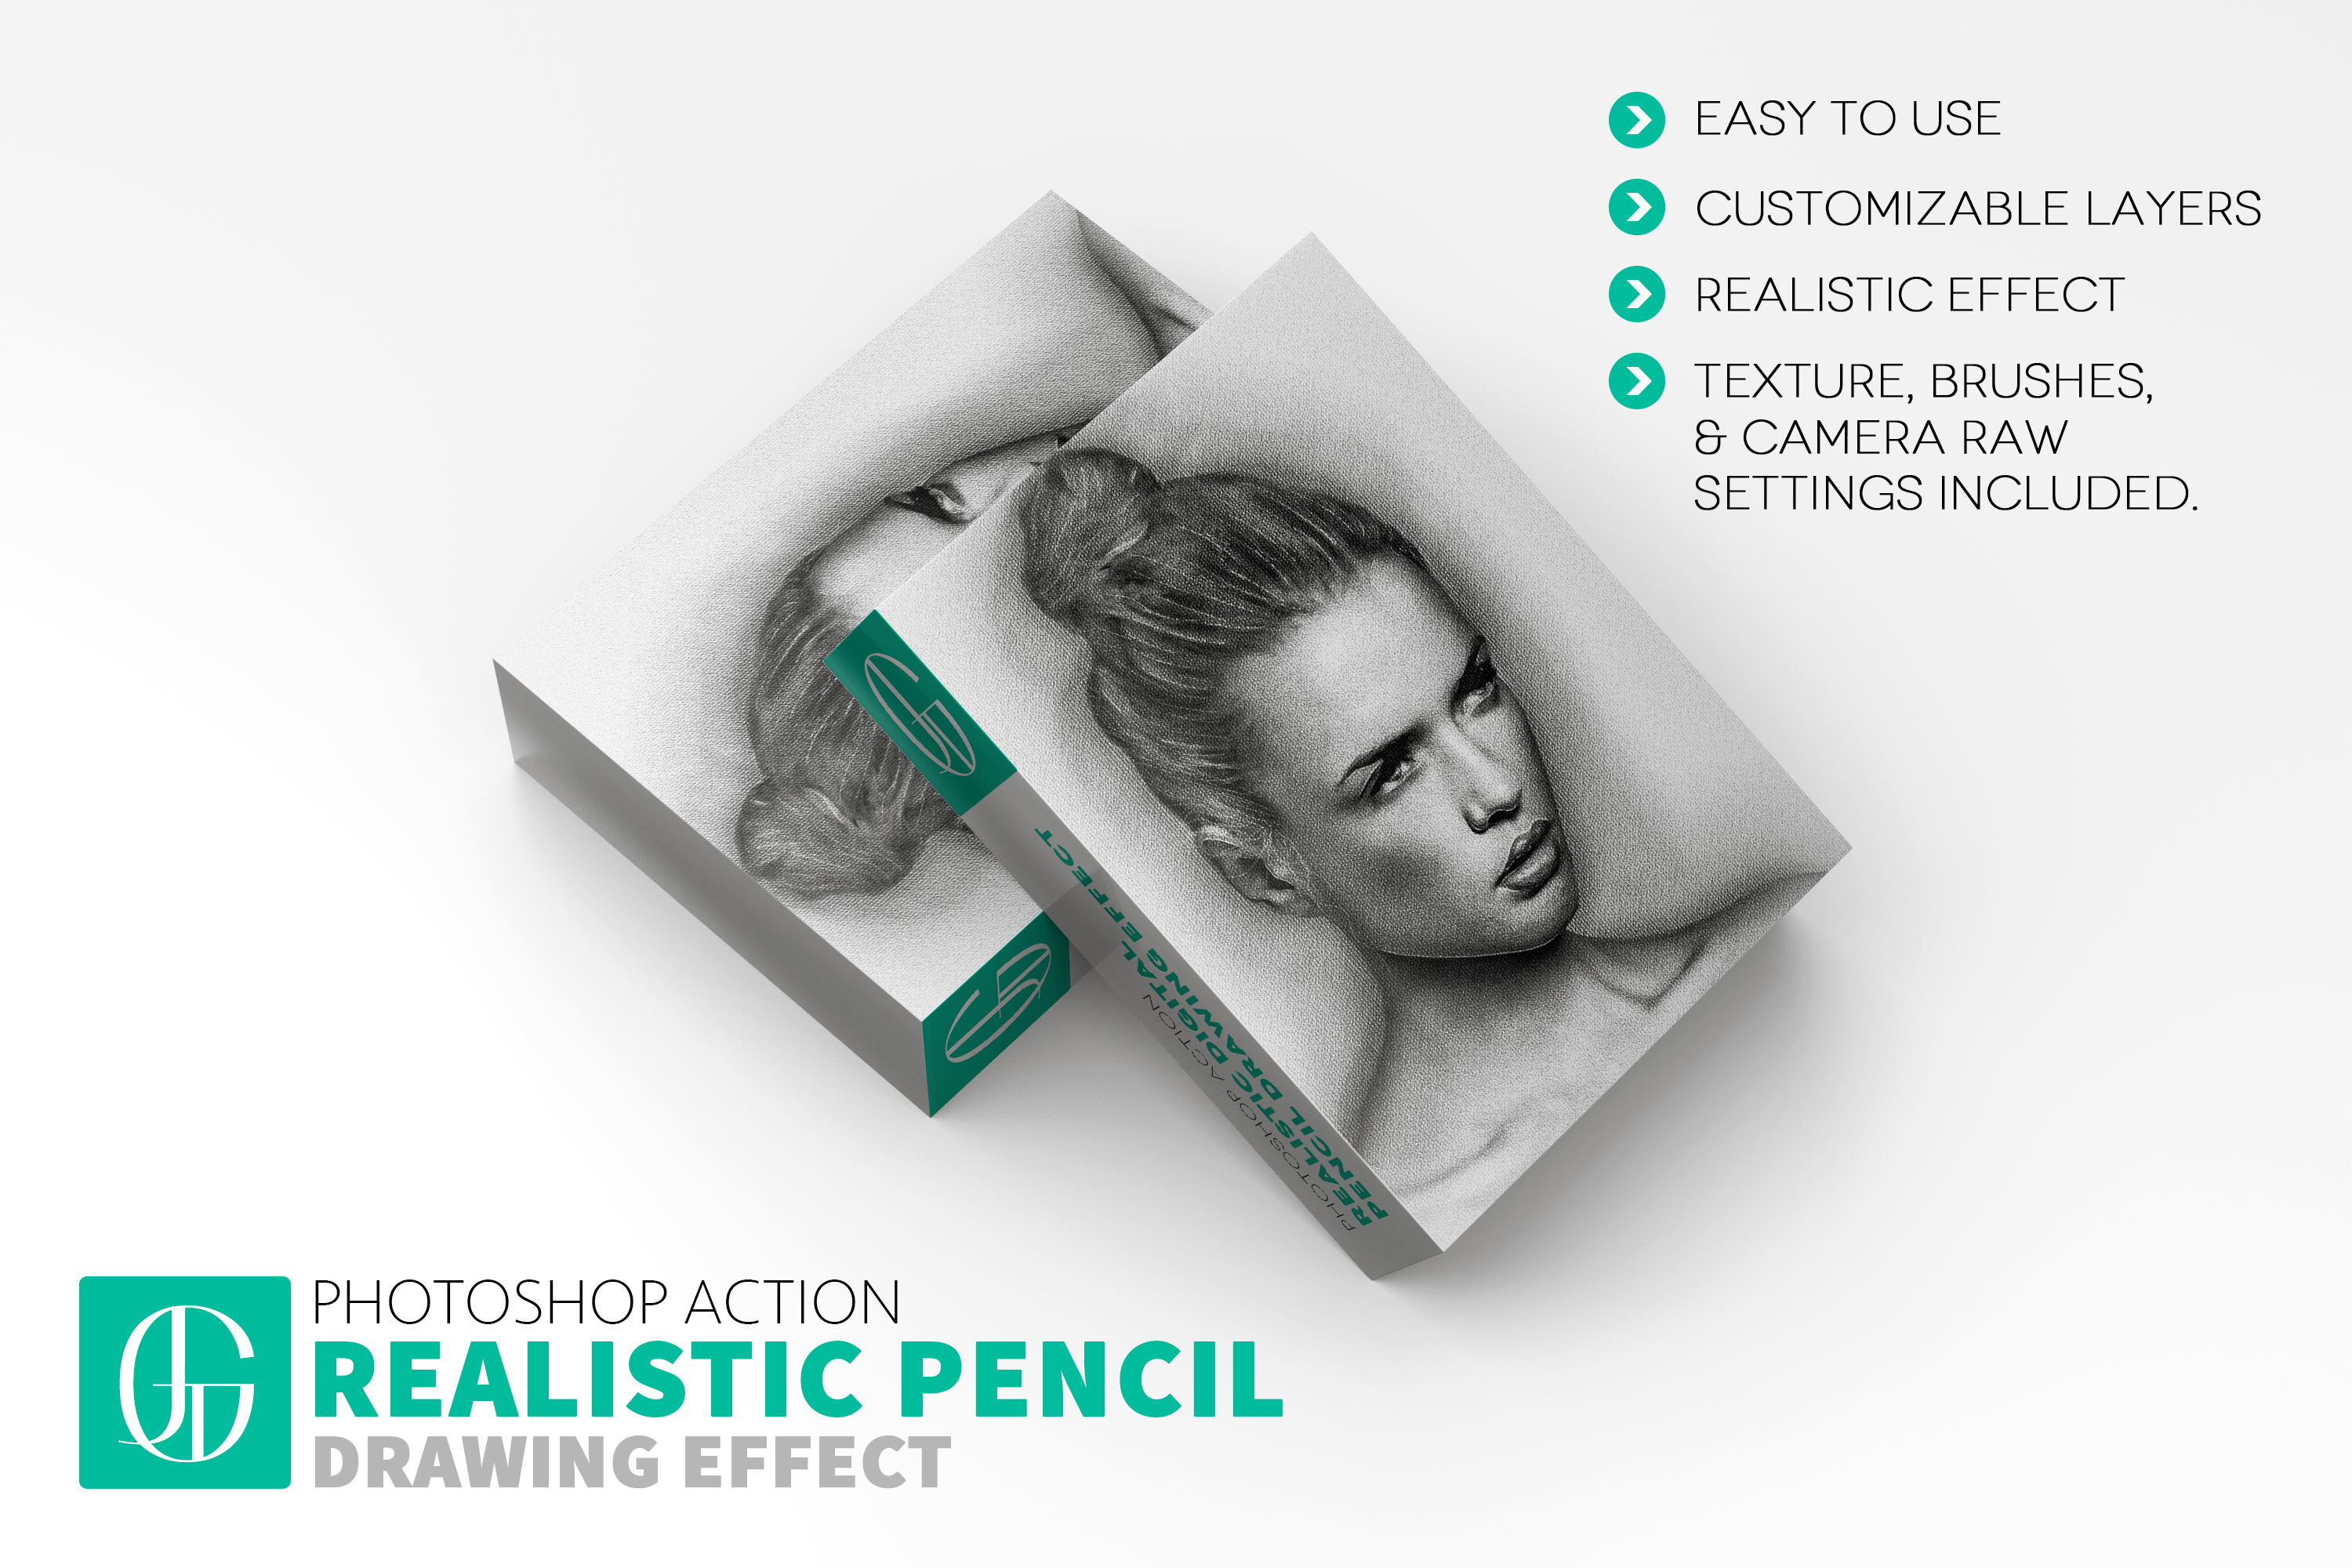 Realistic digital pencil drawing hand drawn photoshop effect action